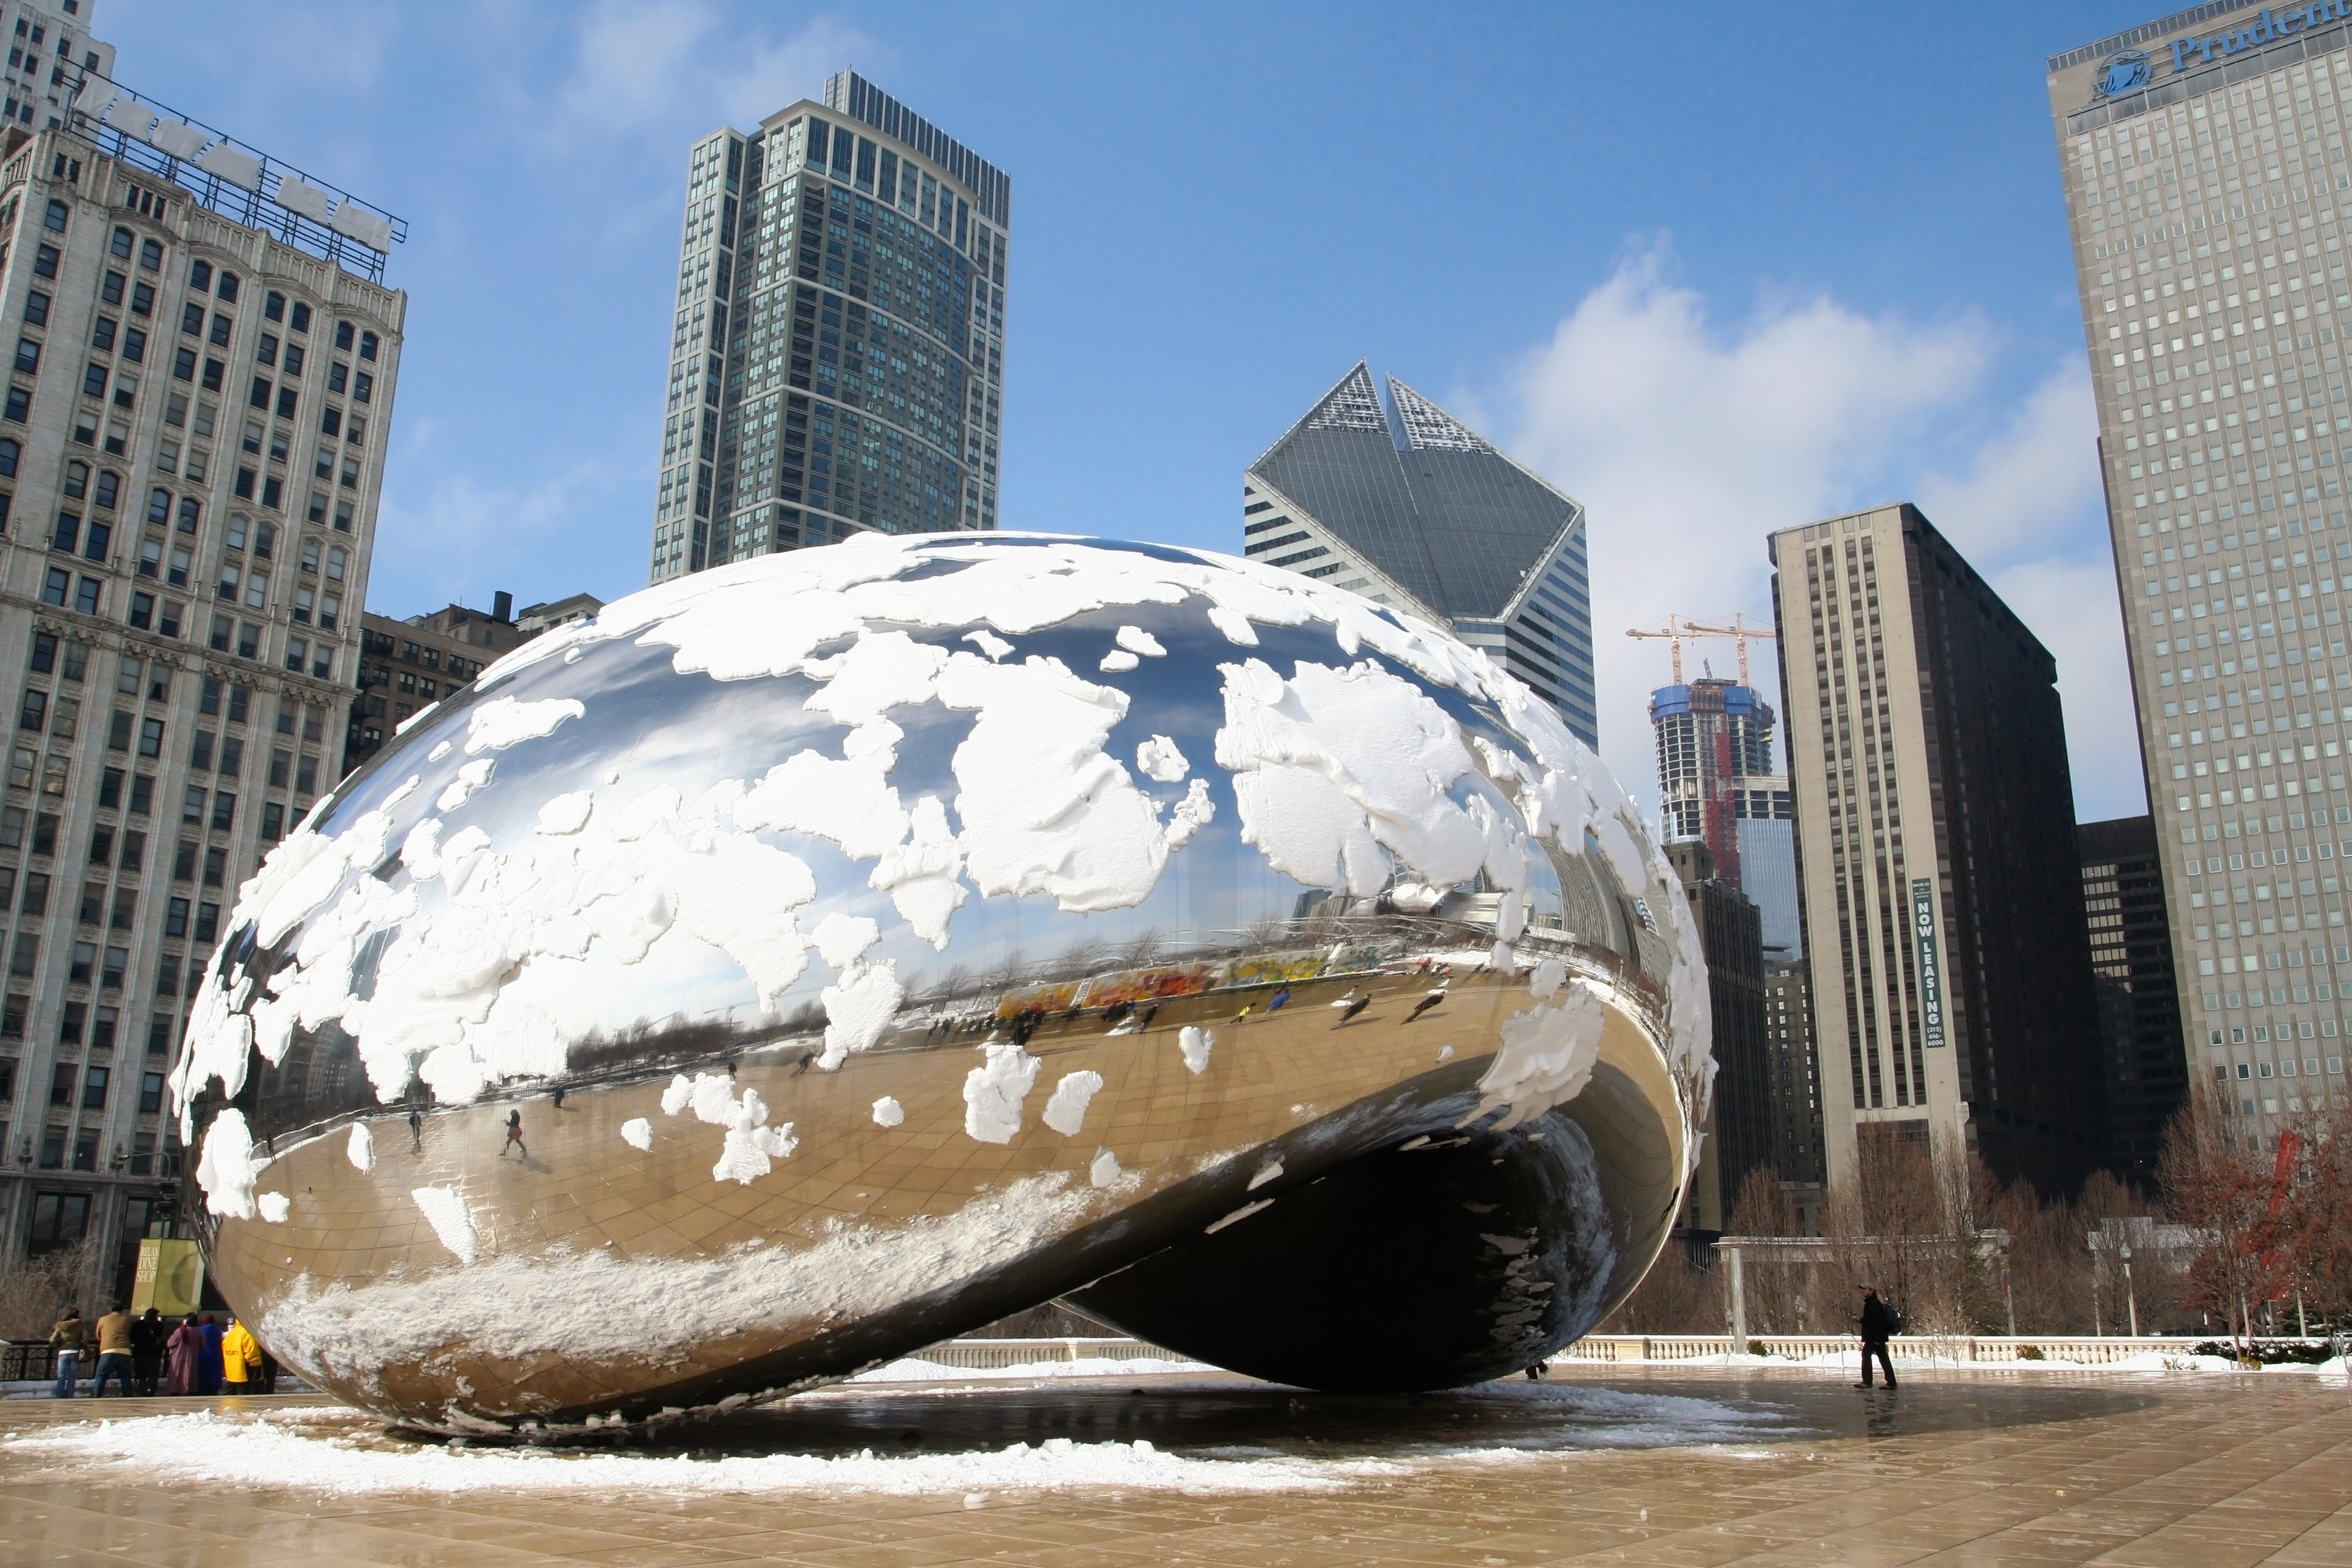 A silver sculpture covered in snow with tall buildings in the background.